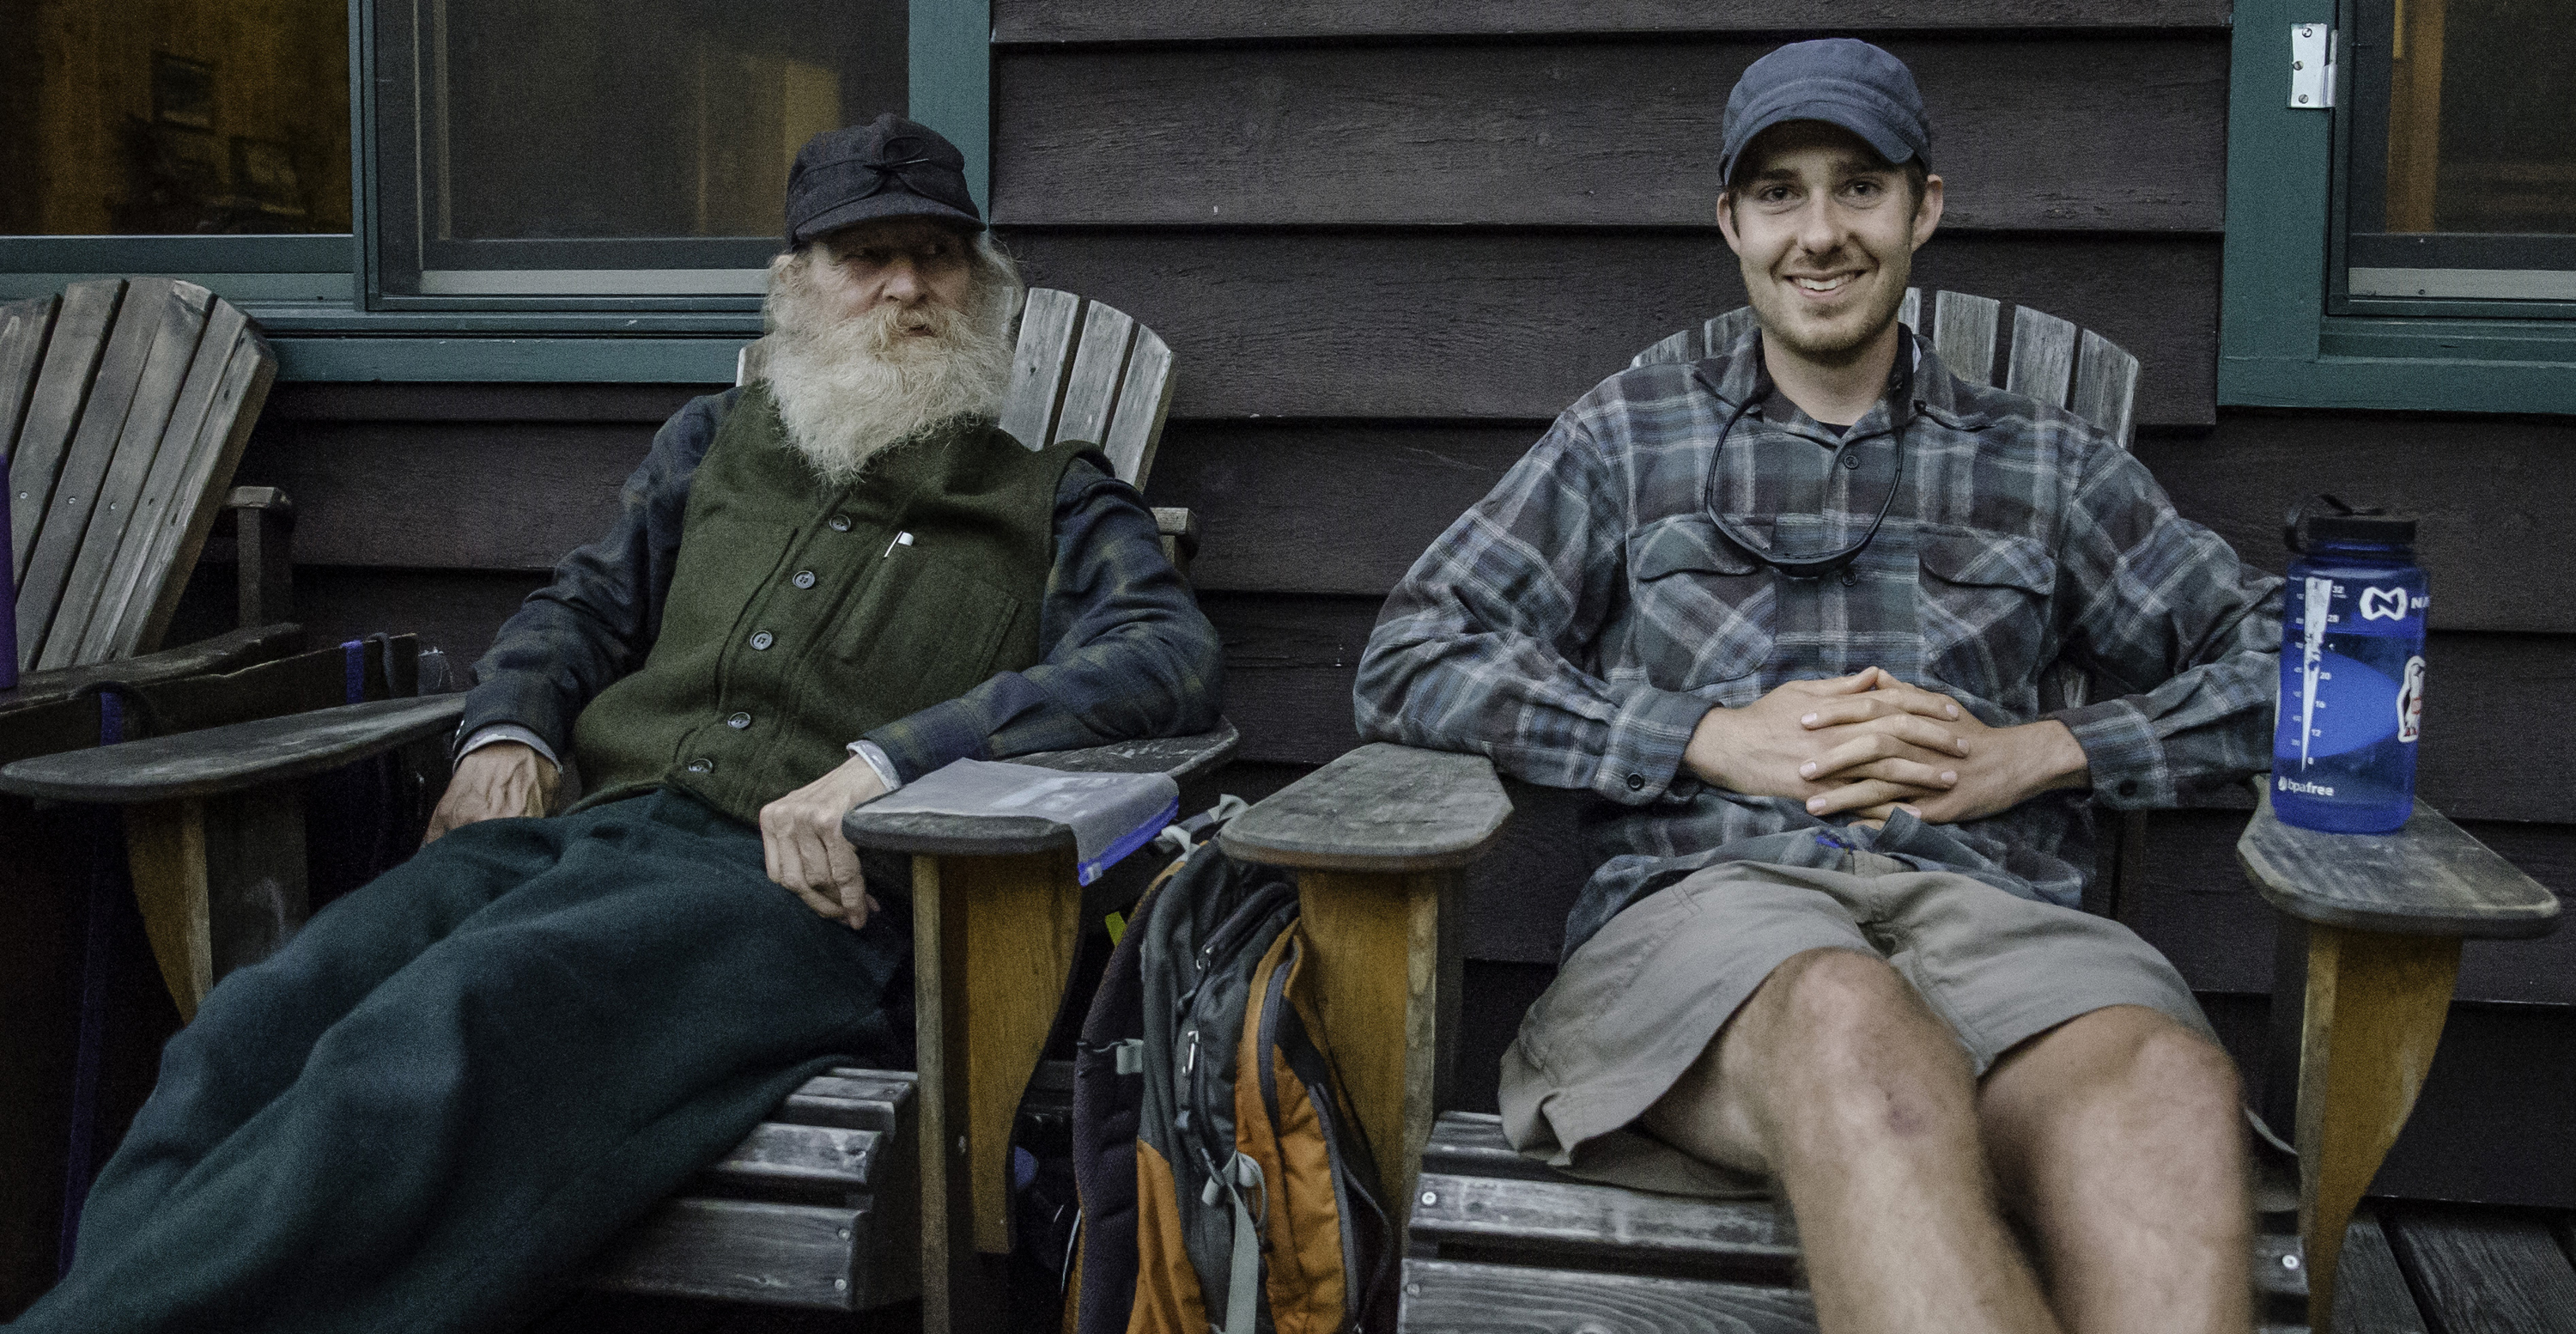 Seth and older hiker on JBL porch